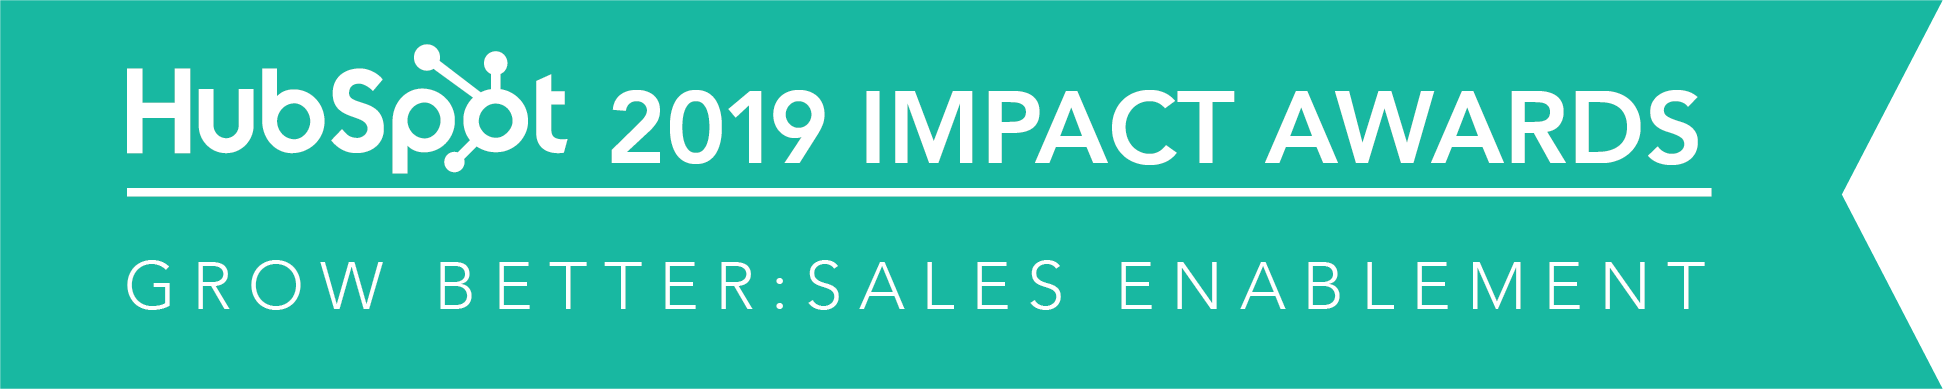 Hubspot_ImpactAwards_2019_SalesEnablement-02 (1)